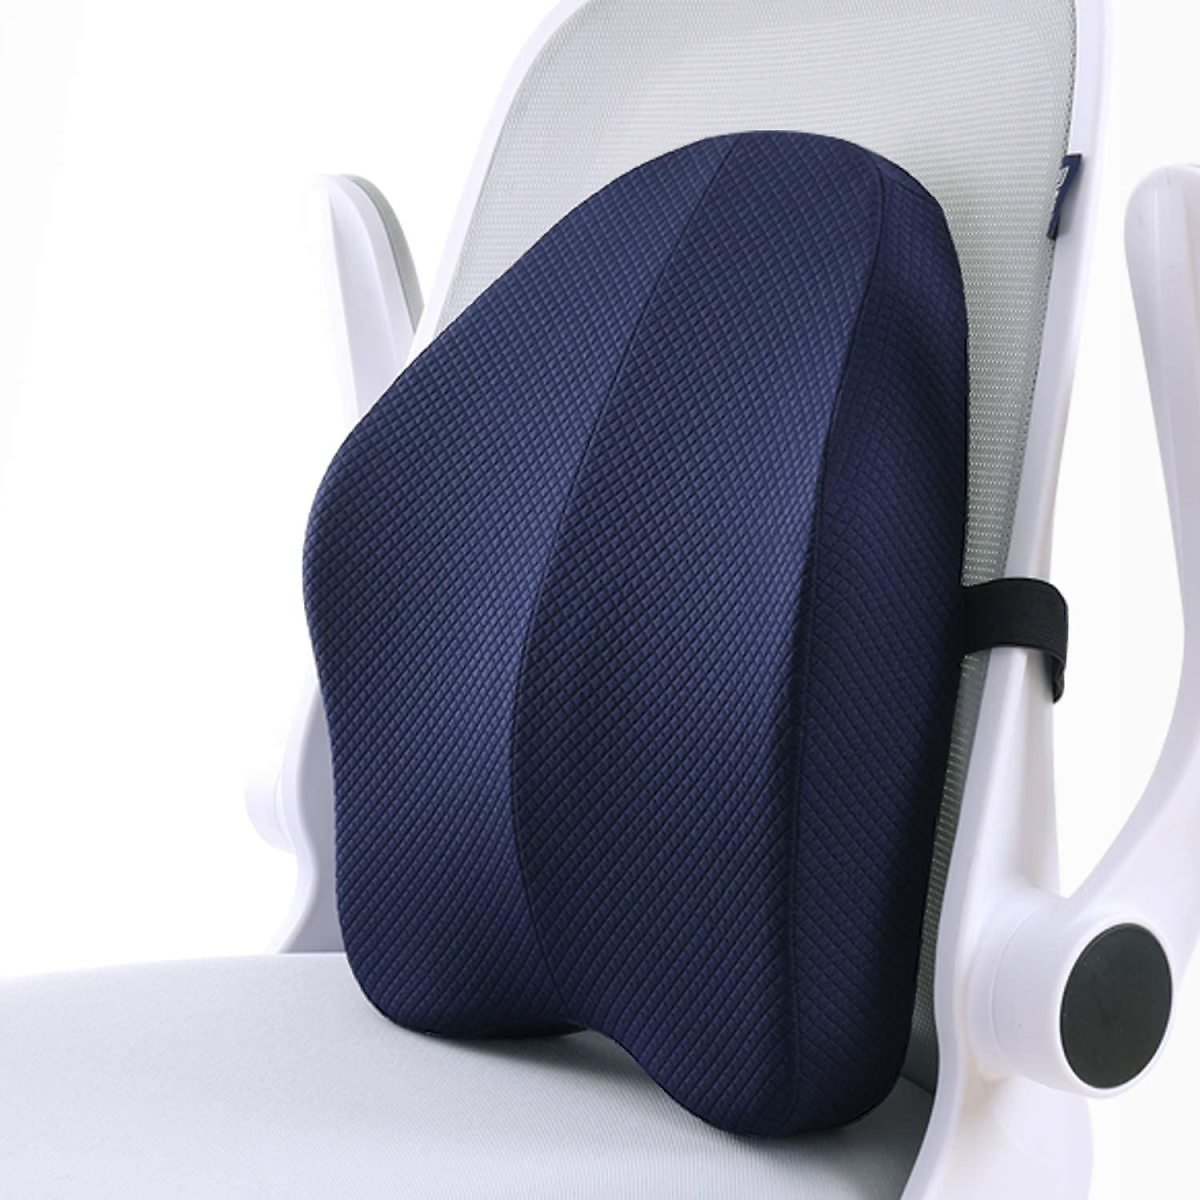 Extra 20% Off Matvio Memory Foam Back Support Cushion for Office Chair